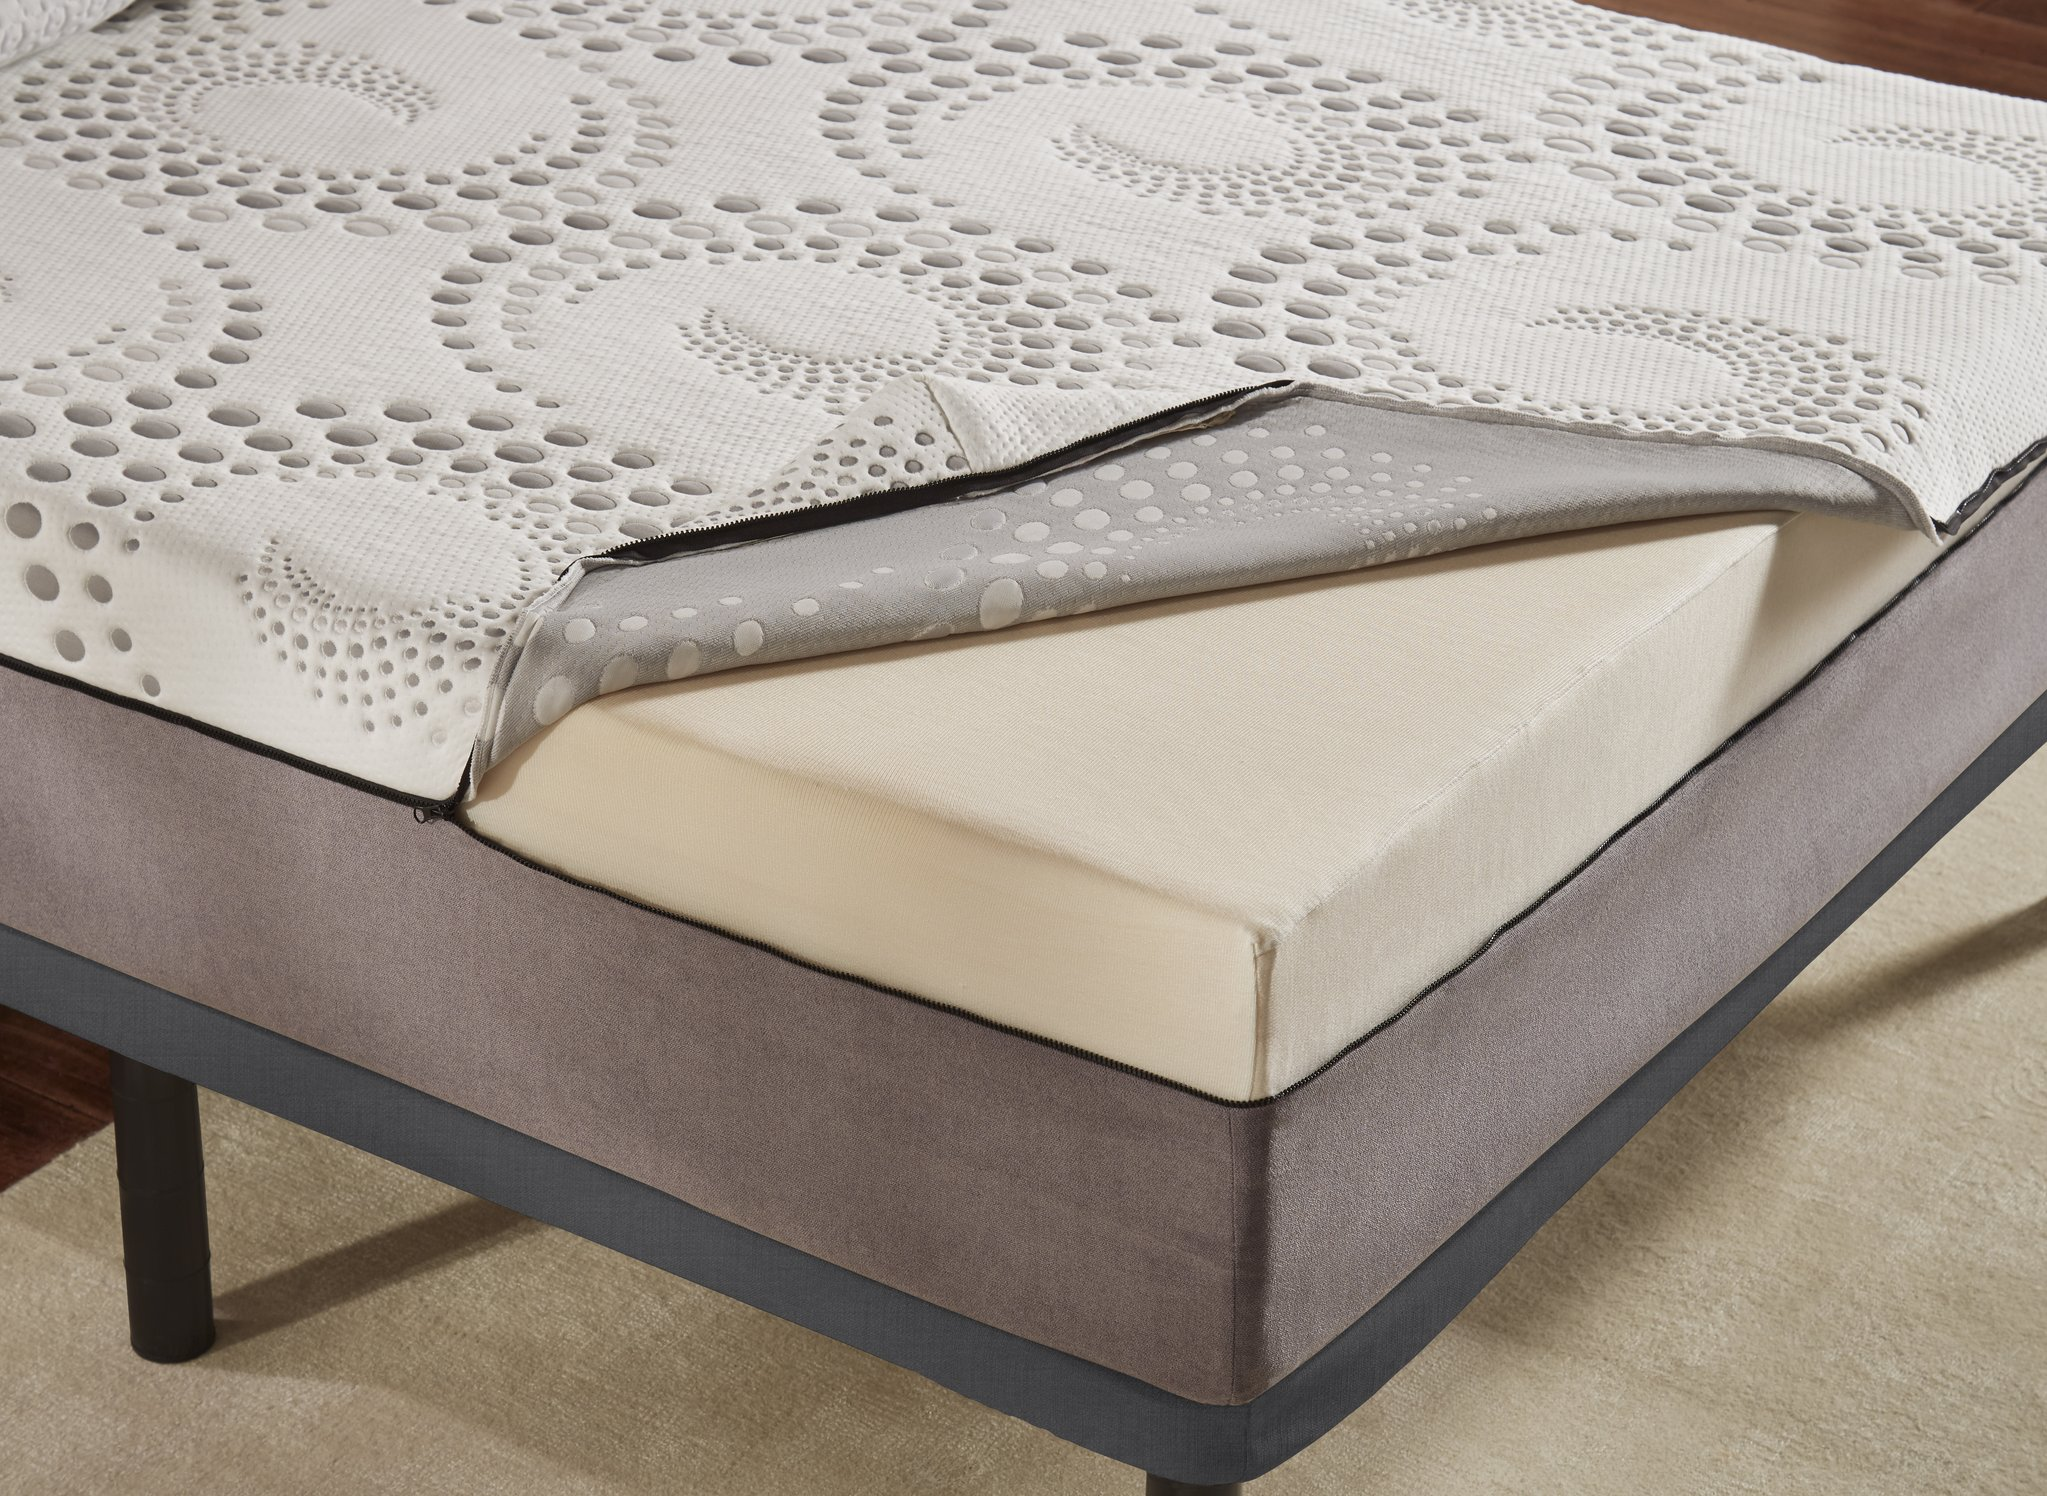 Memory Foam Mattress -A Wise Choice Or Not?